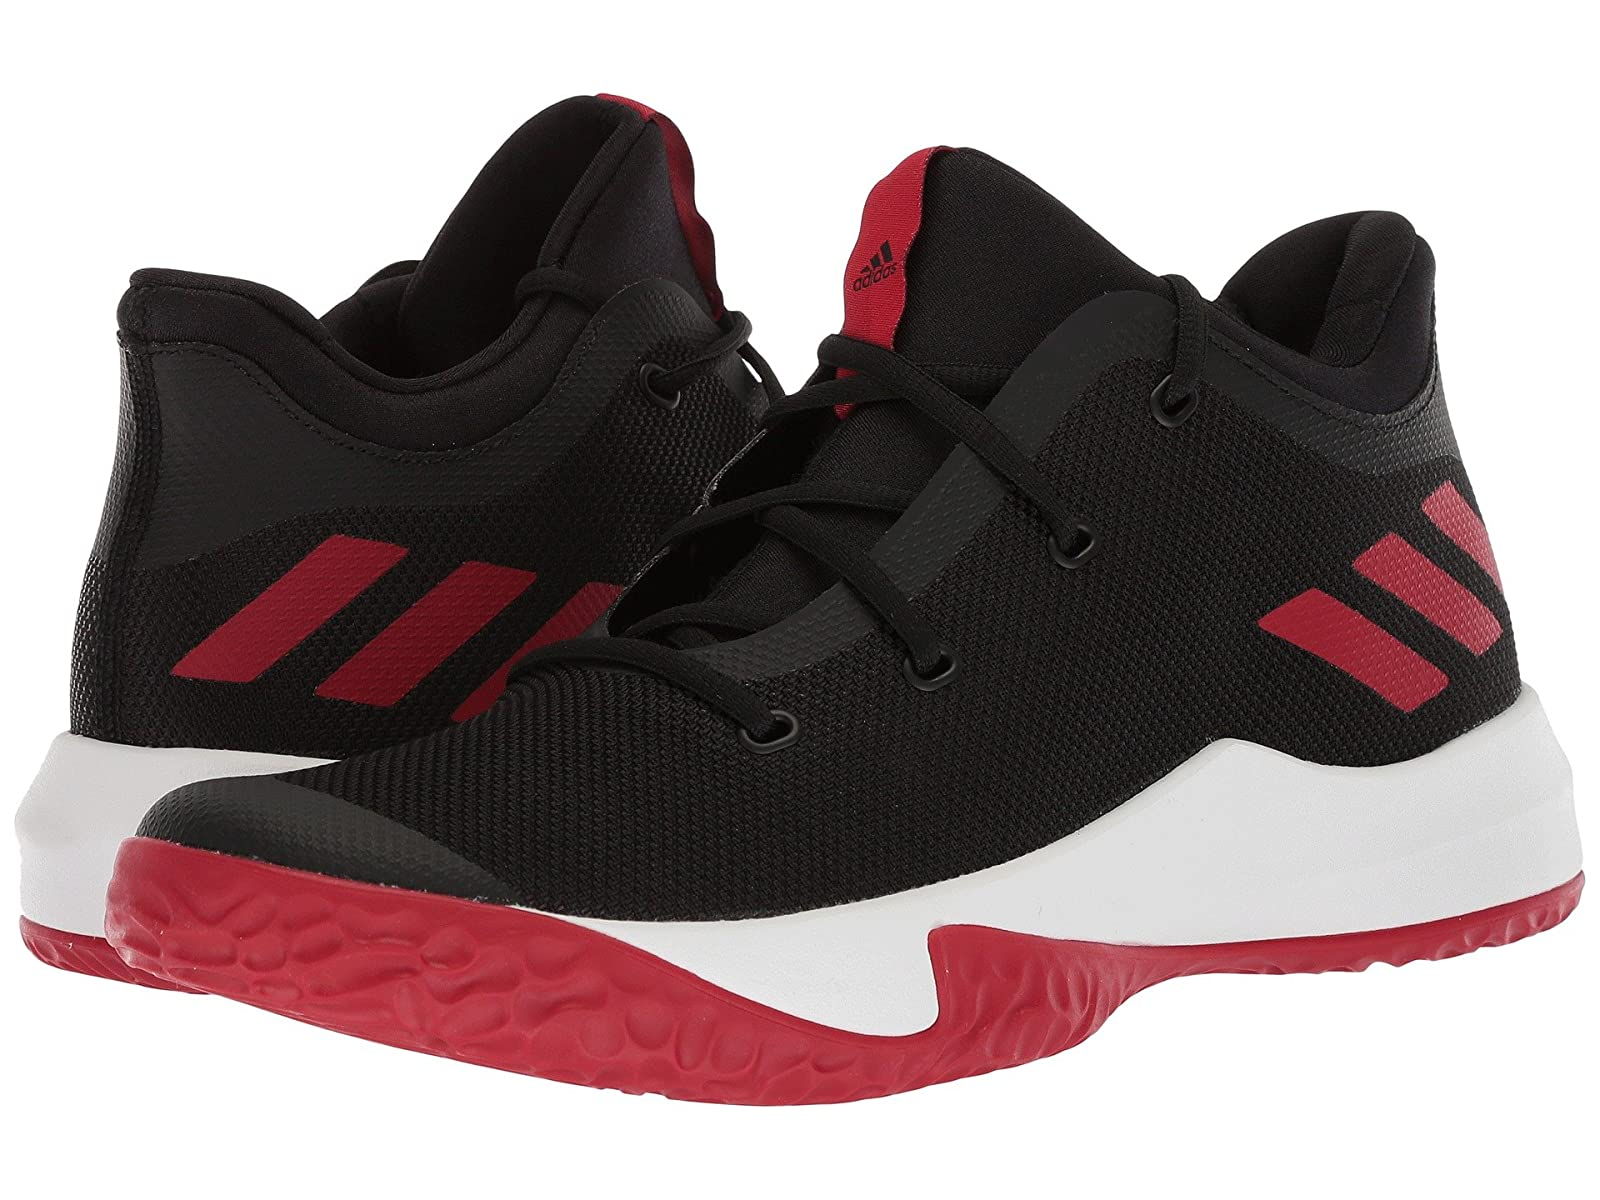 adidas Rise Up 2Atmospheric grades have affordable shoes